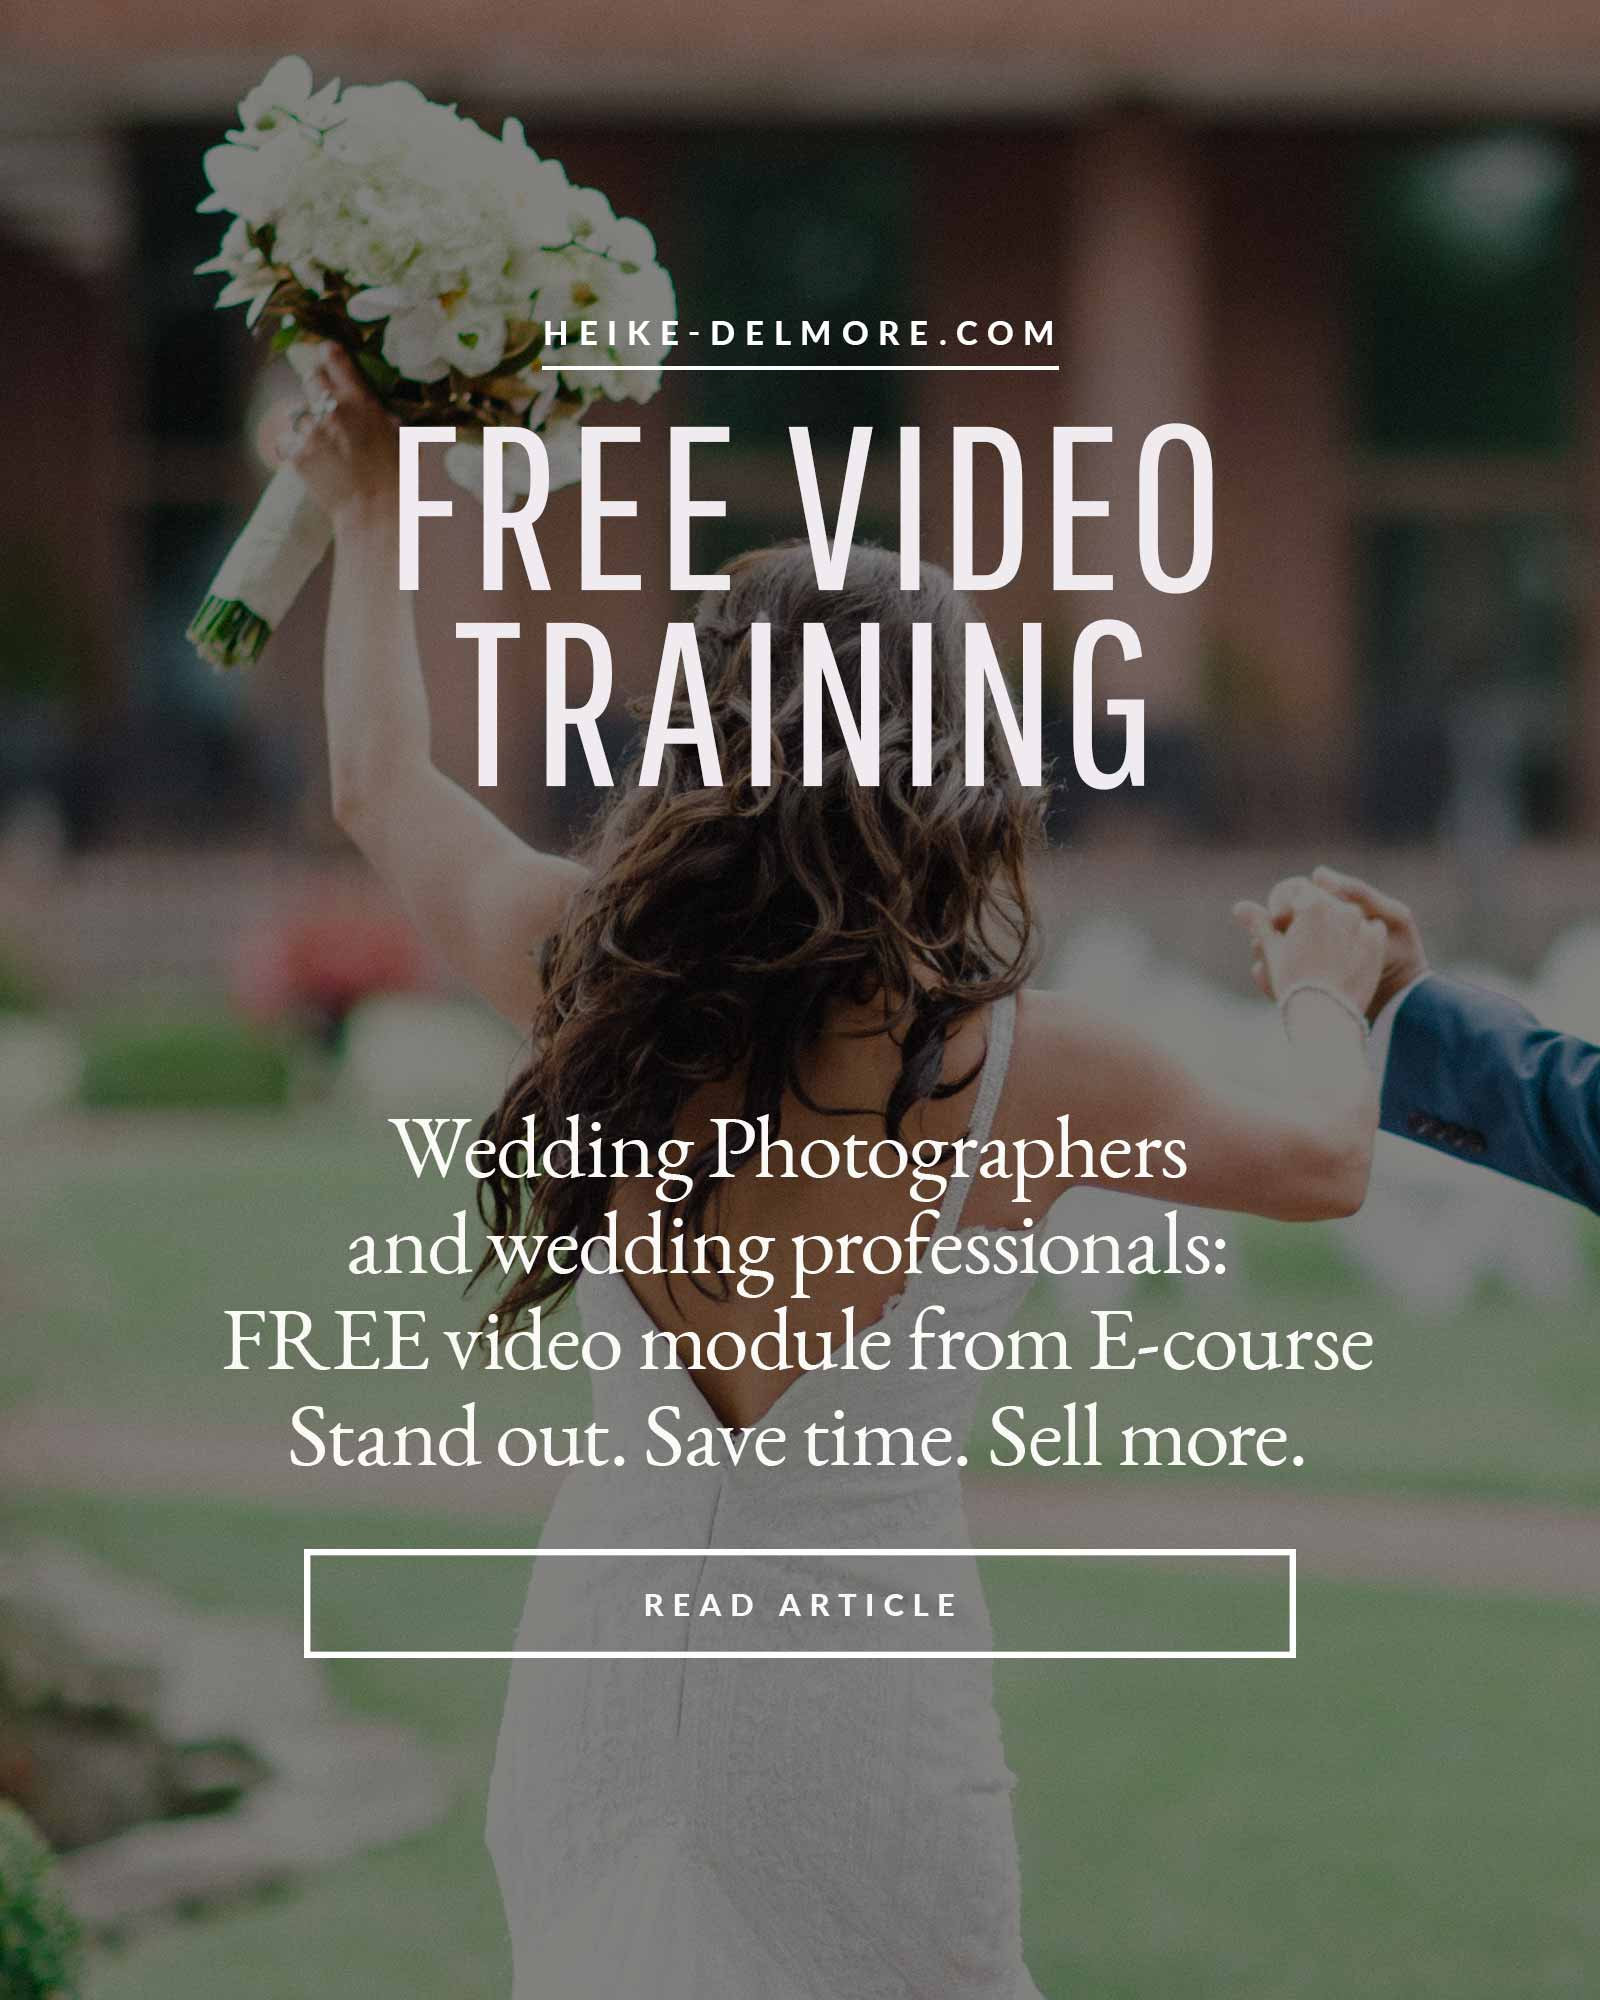 Free video training successful wedding photography business with Heike Delmore